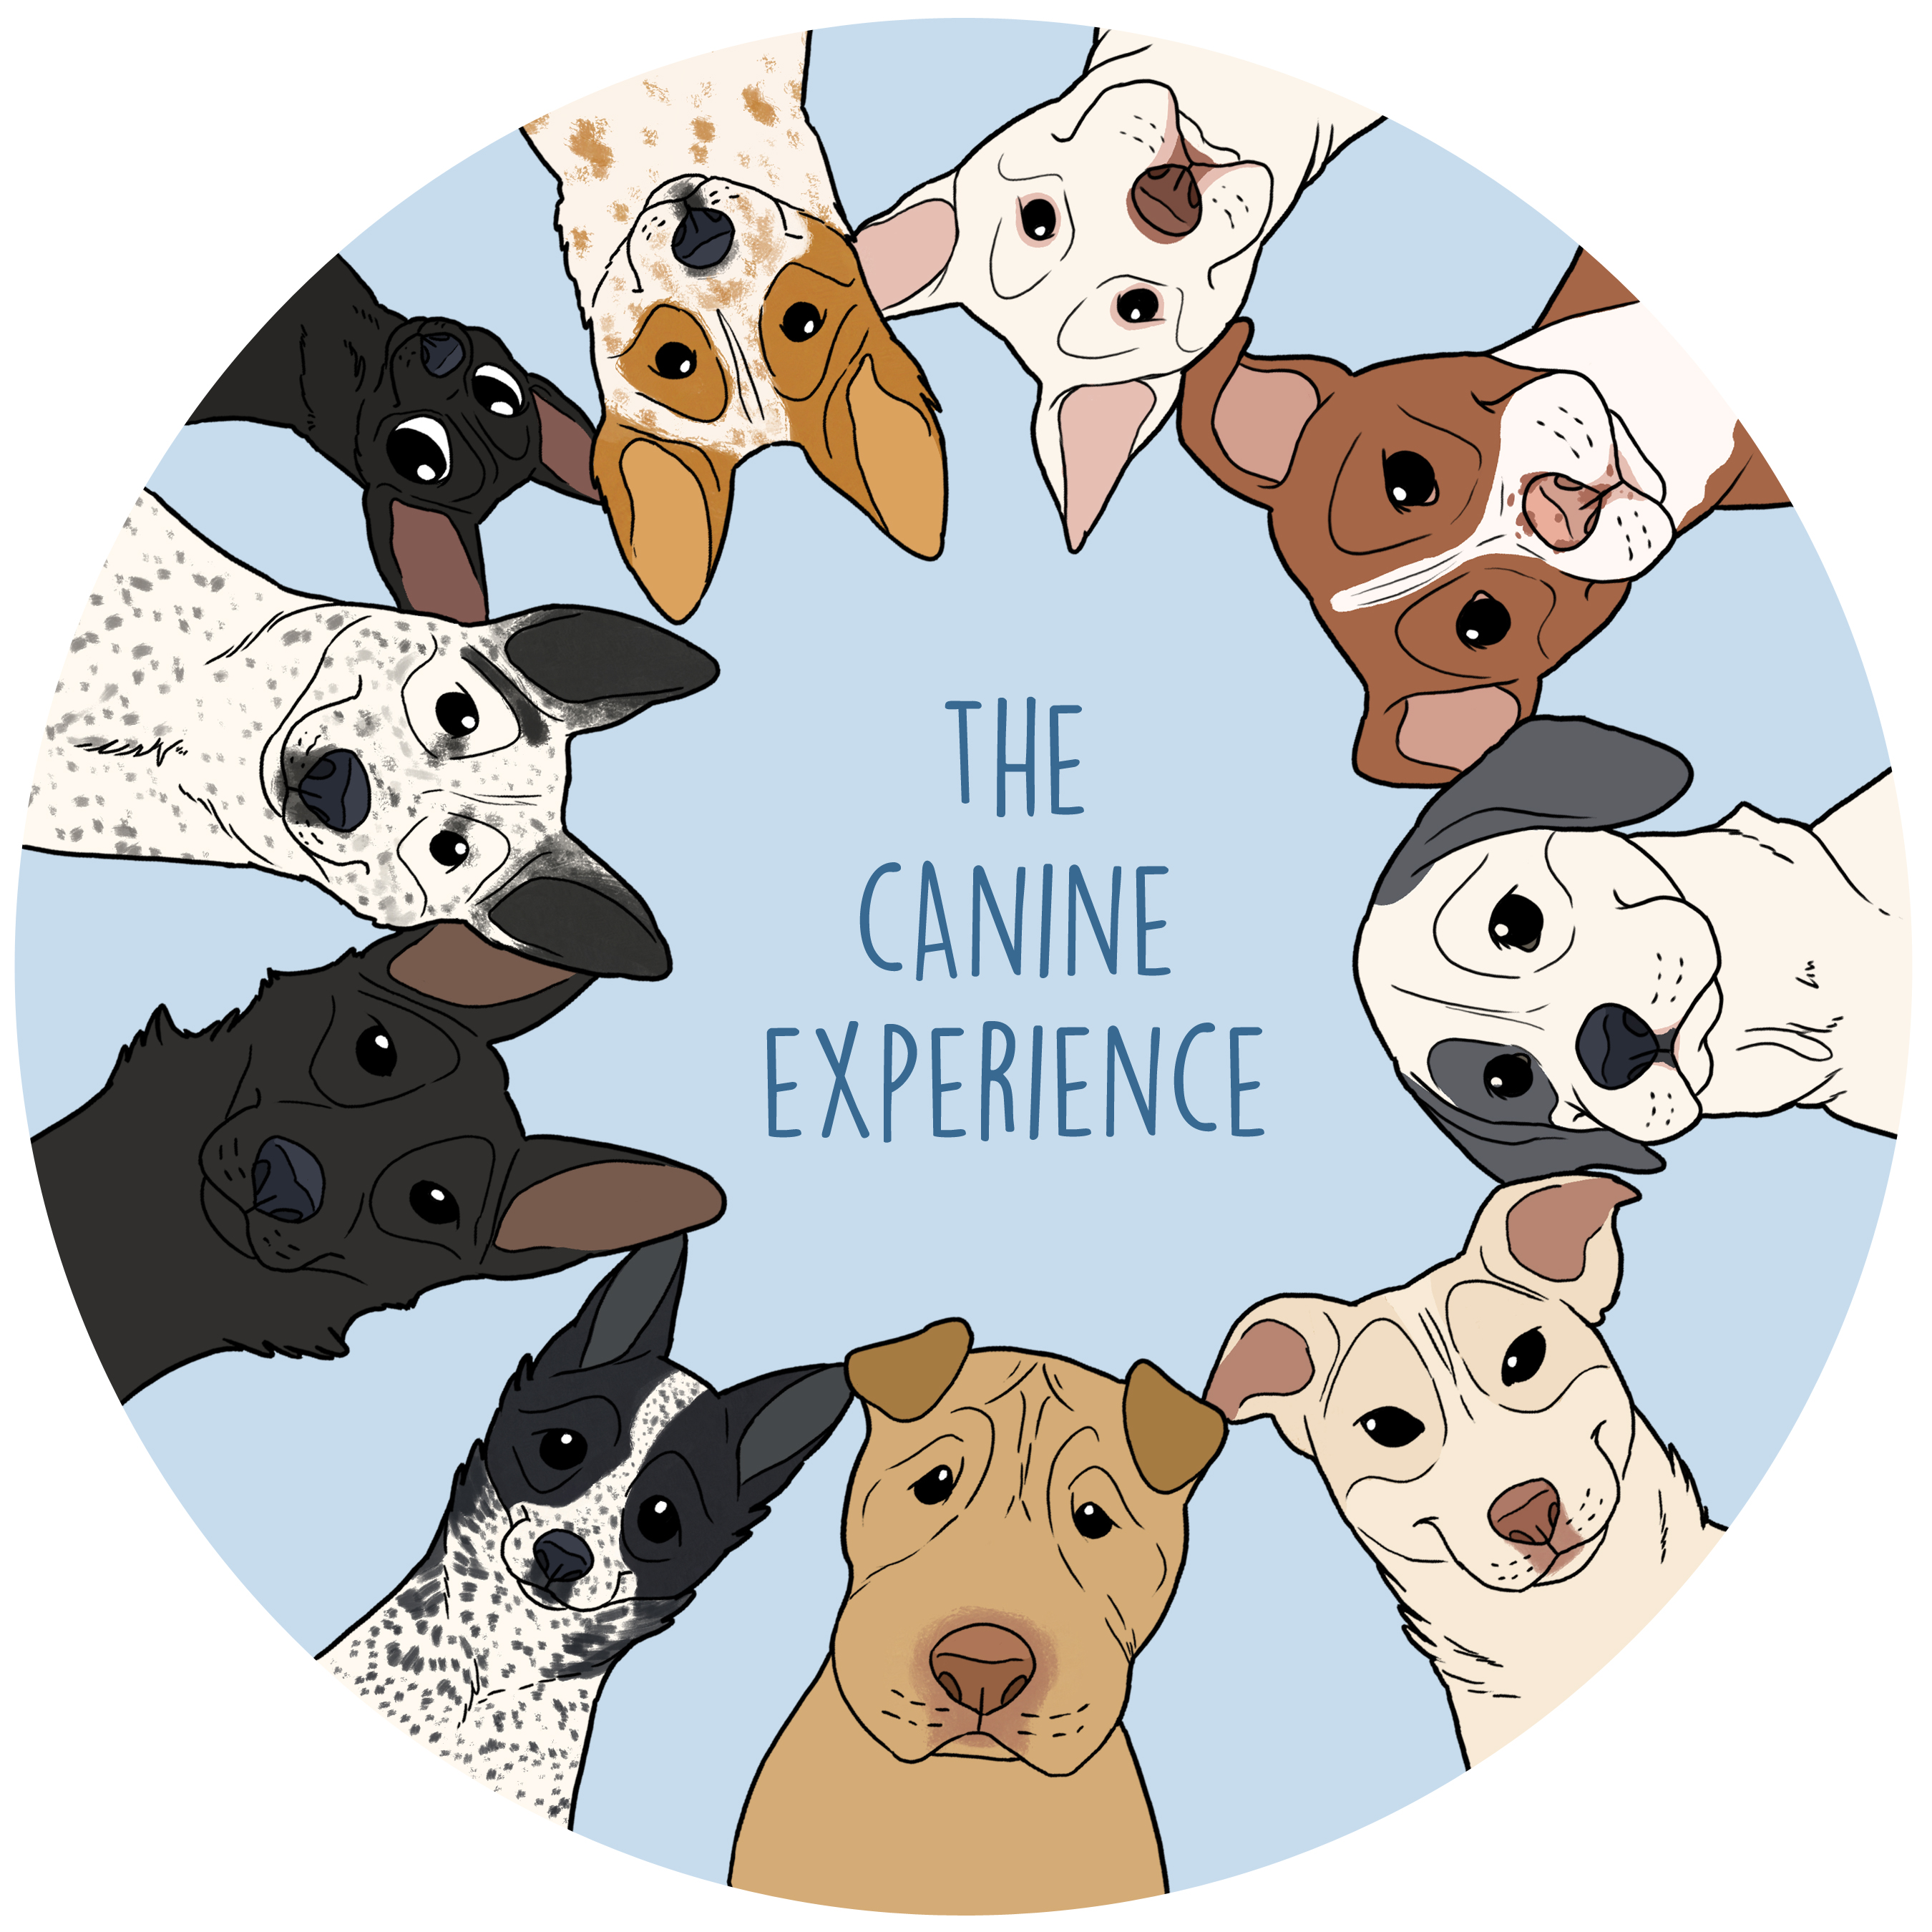 the canine experience